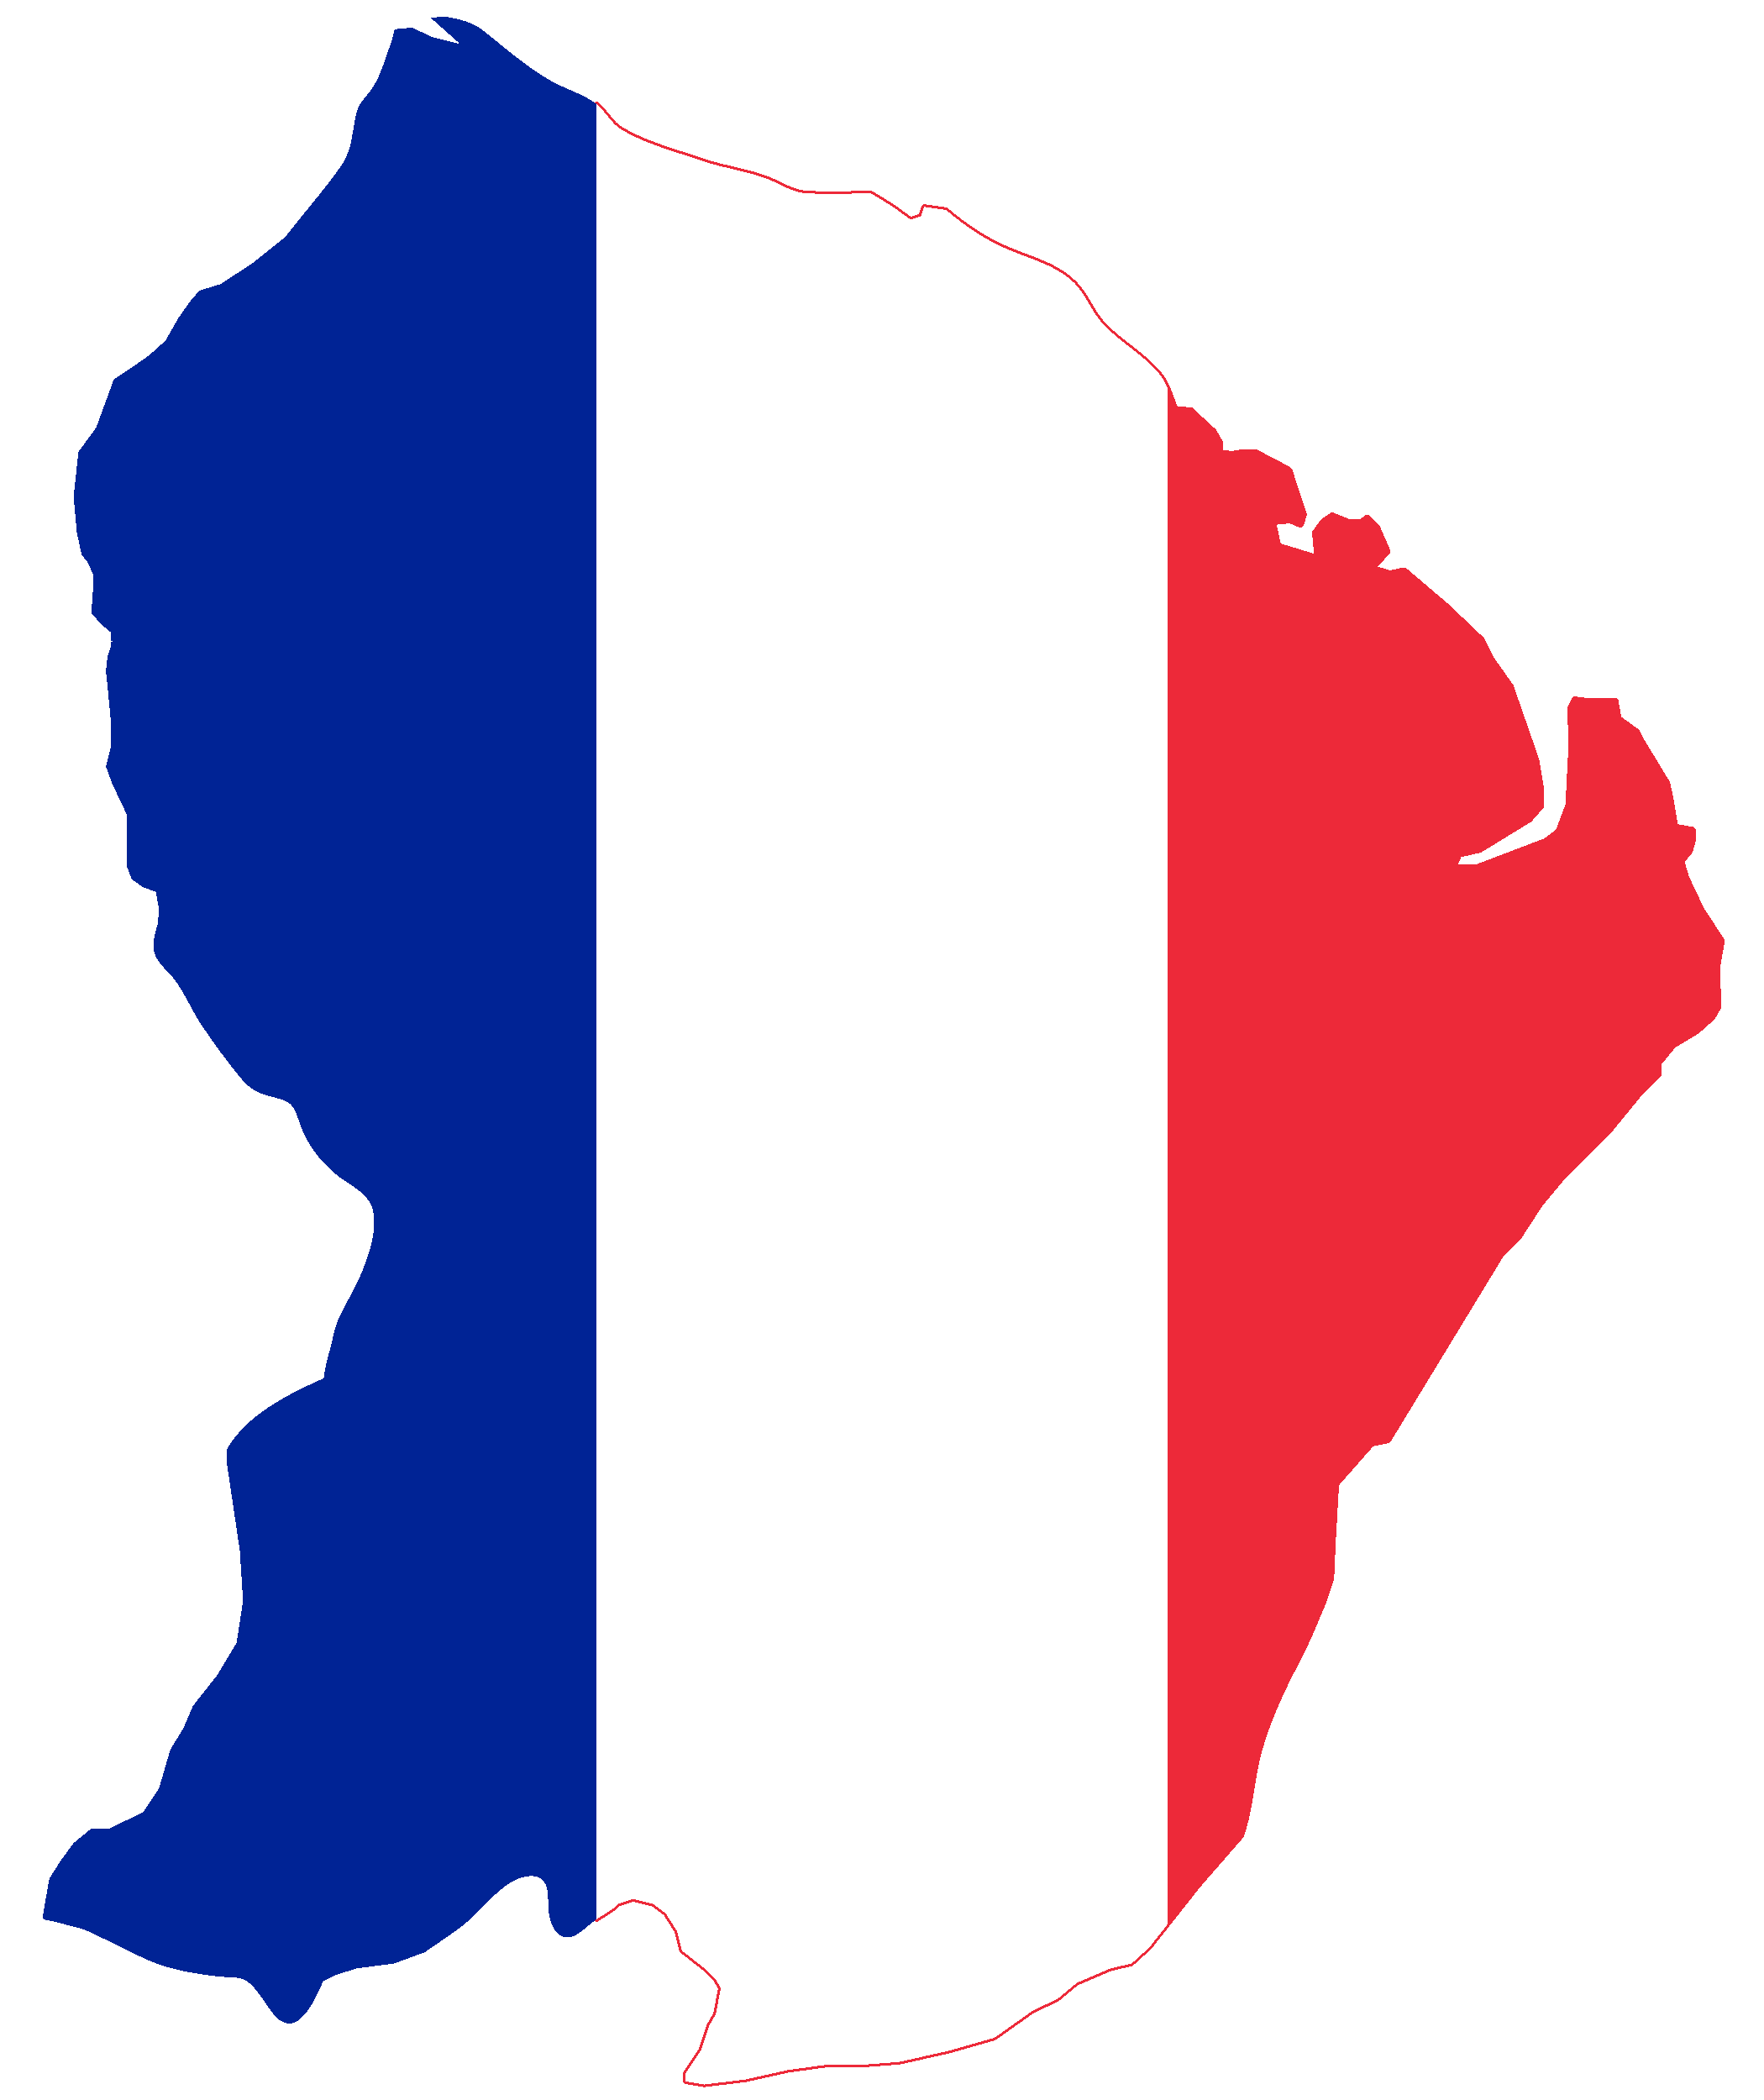 French drawing flag france. File map of guiana